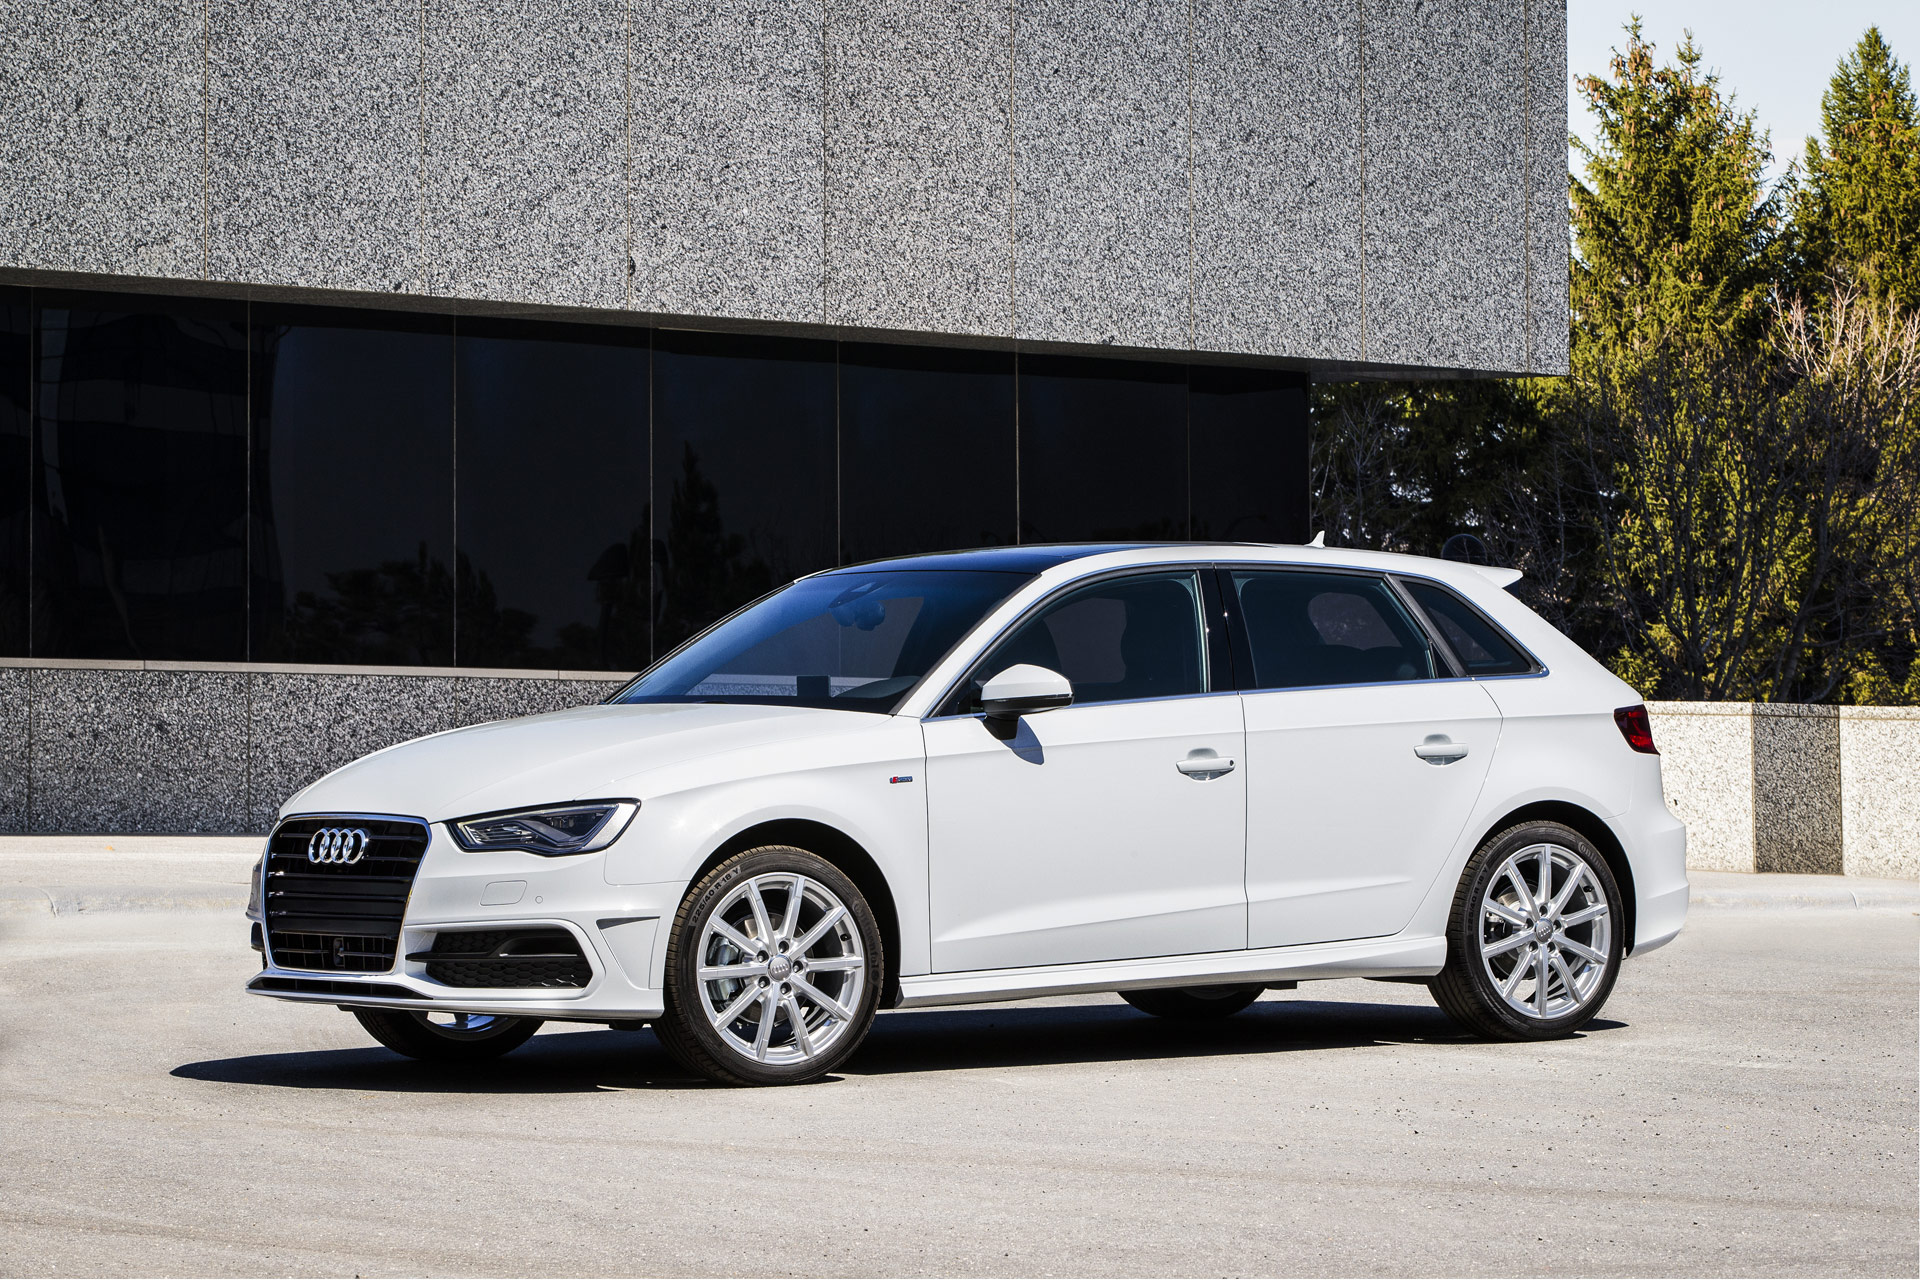 2015 audi a3 tdi sportback. Black Bedroom Furniture Sets. Home Design Ideas